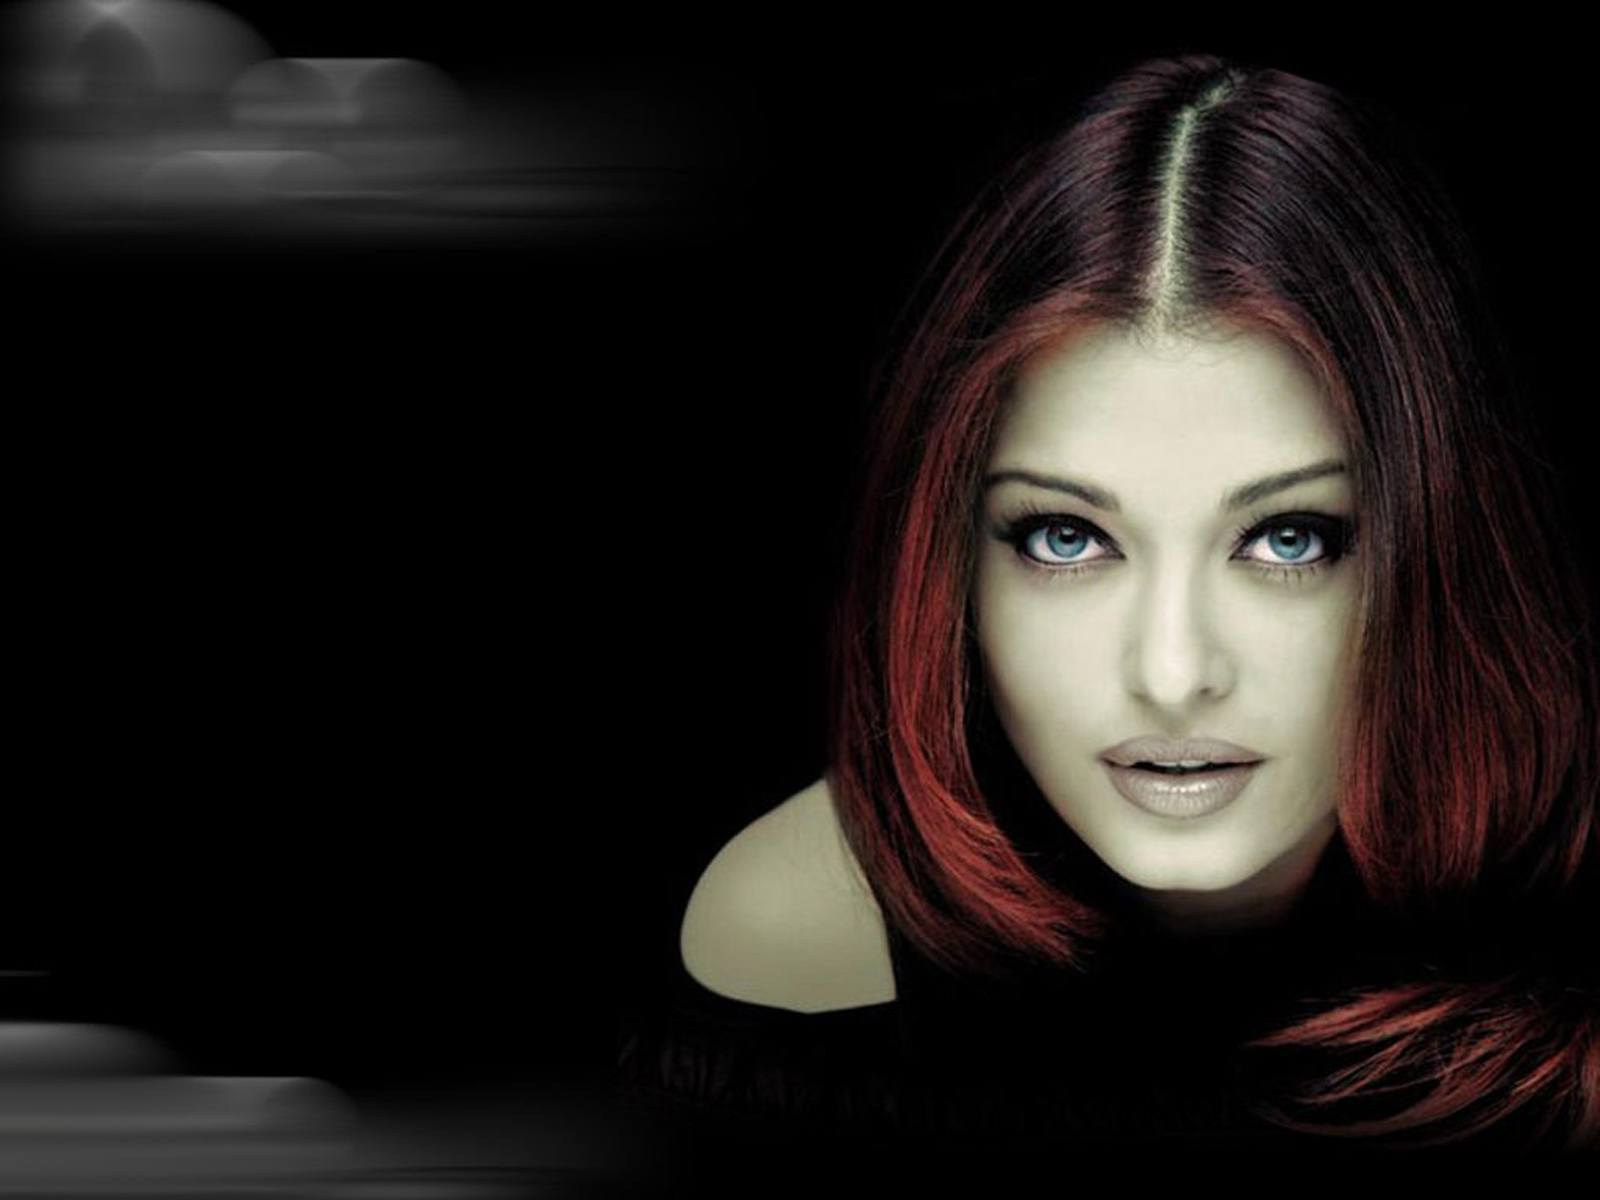 aishwarya_rai-wallpaper_2147483668